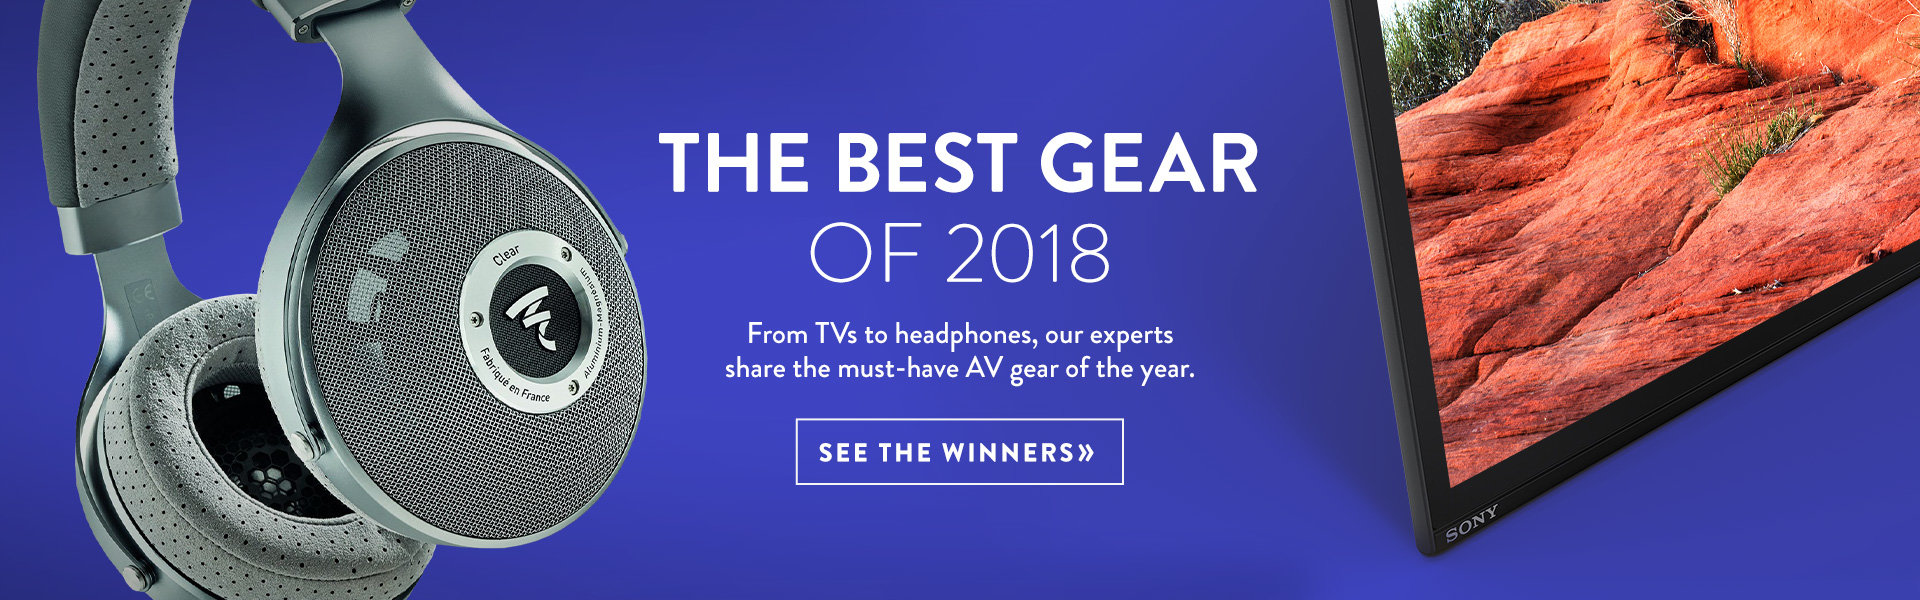 The Best Gear of 2018